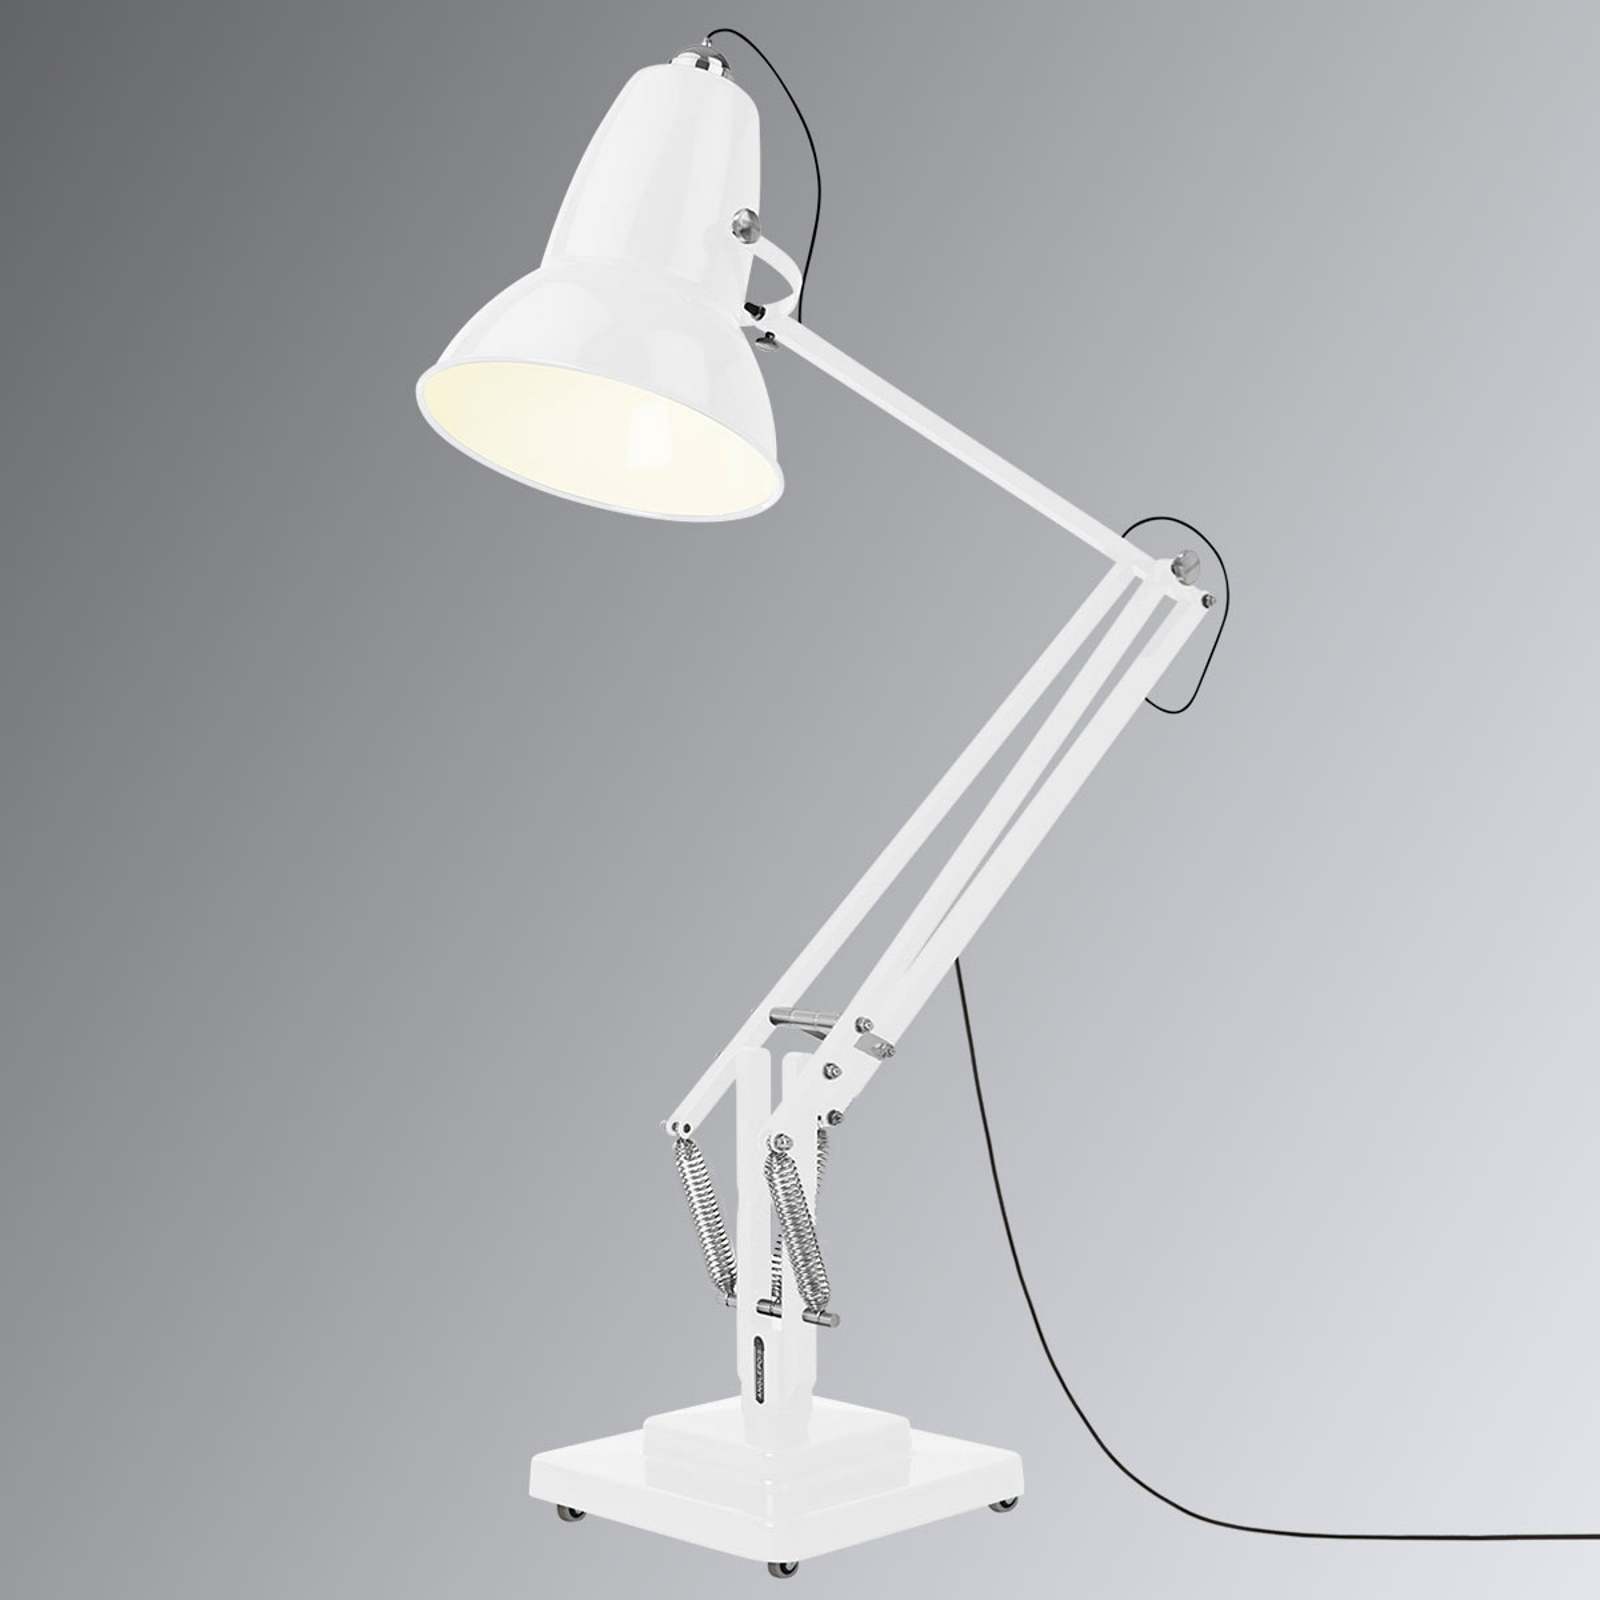 Anglepoise Original 1227 Giant IP65 lampe blanche